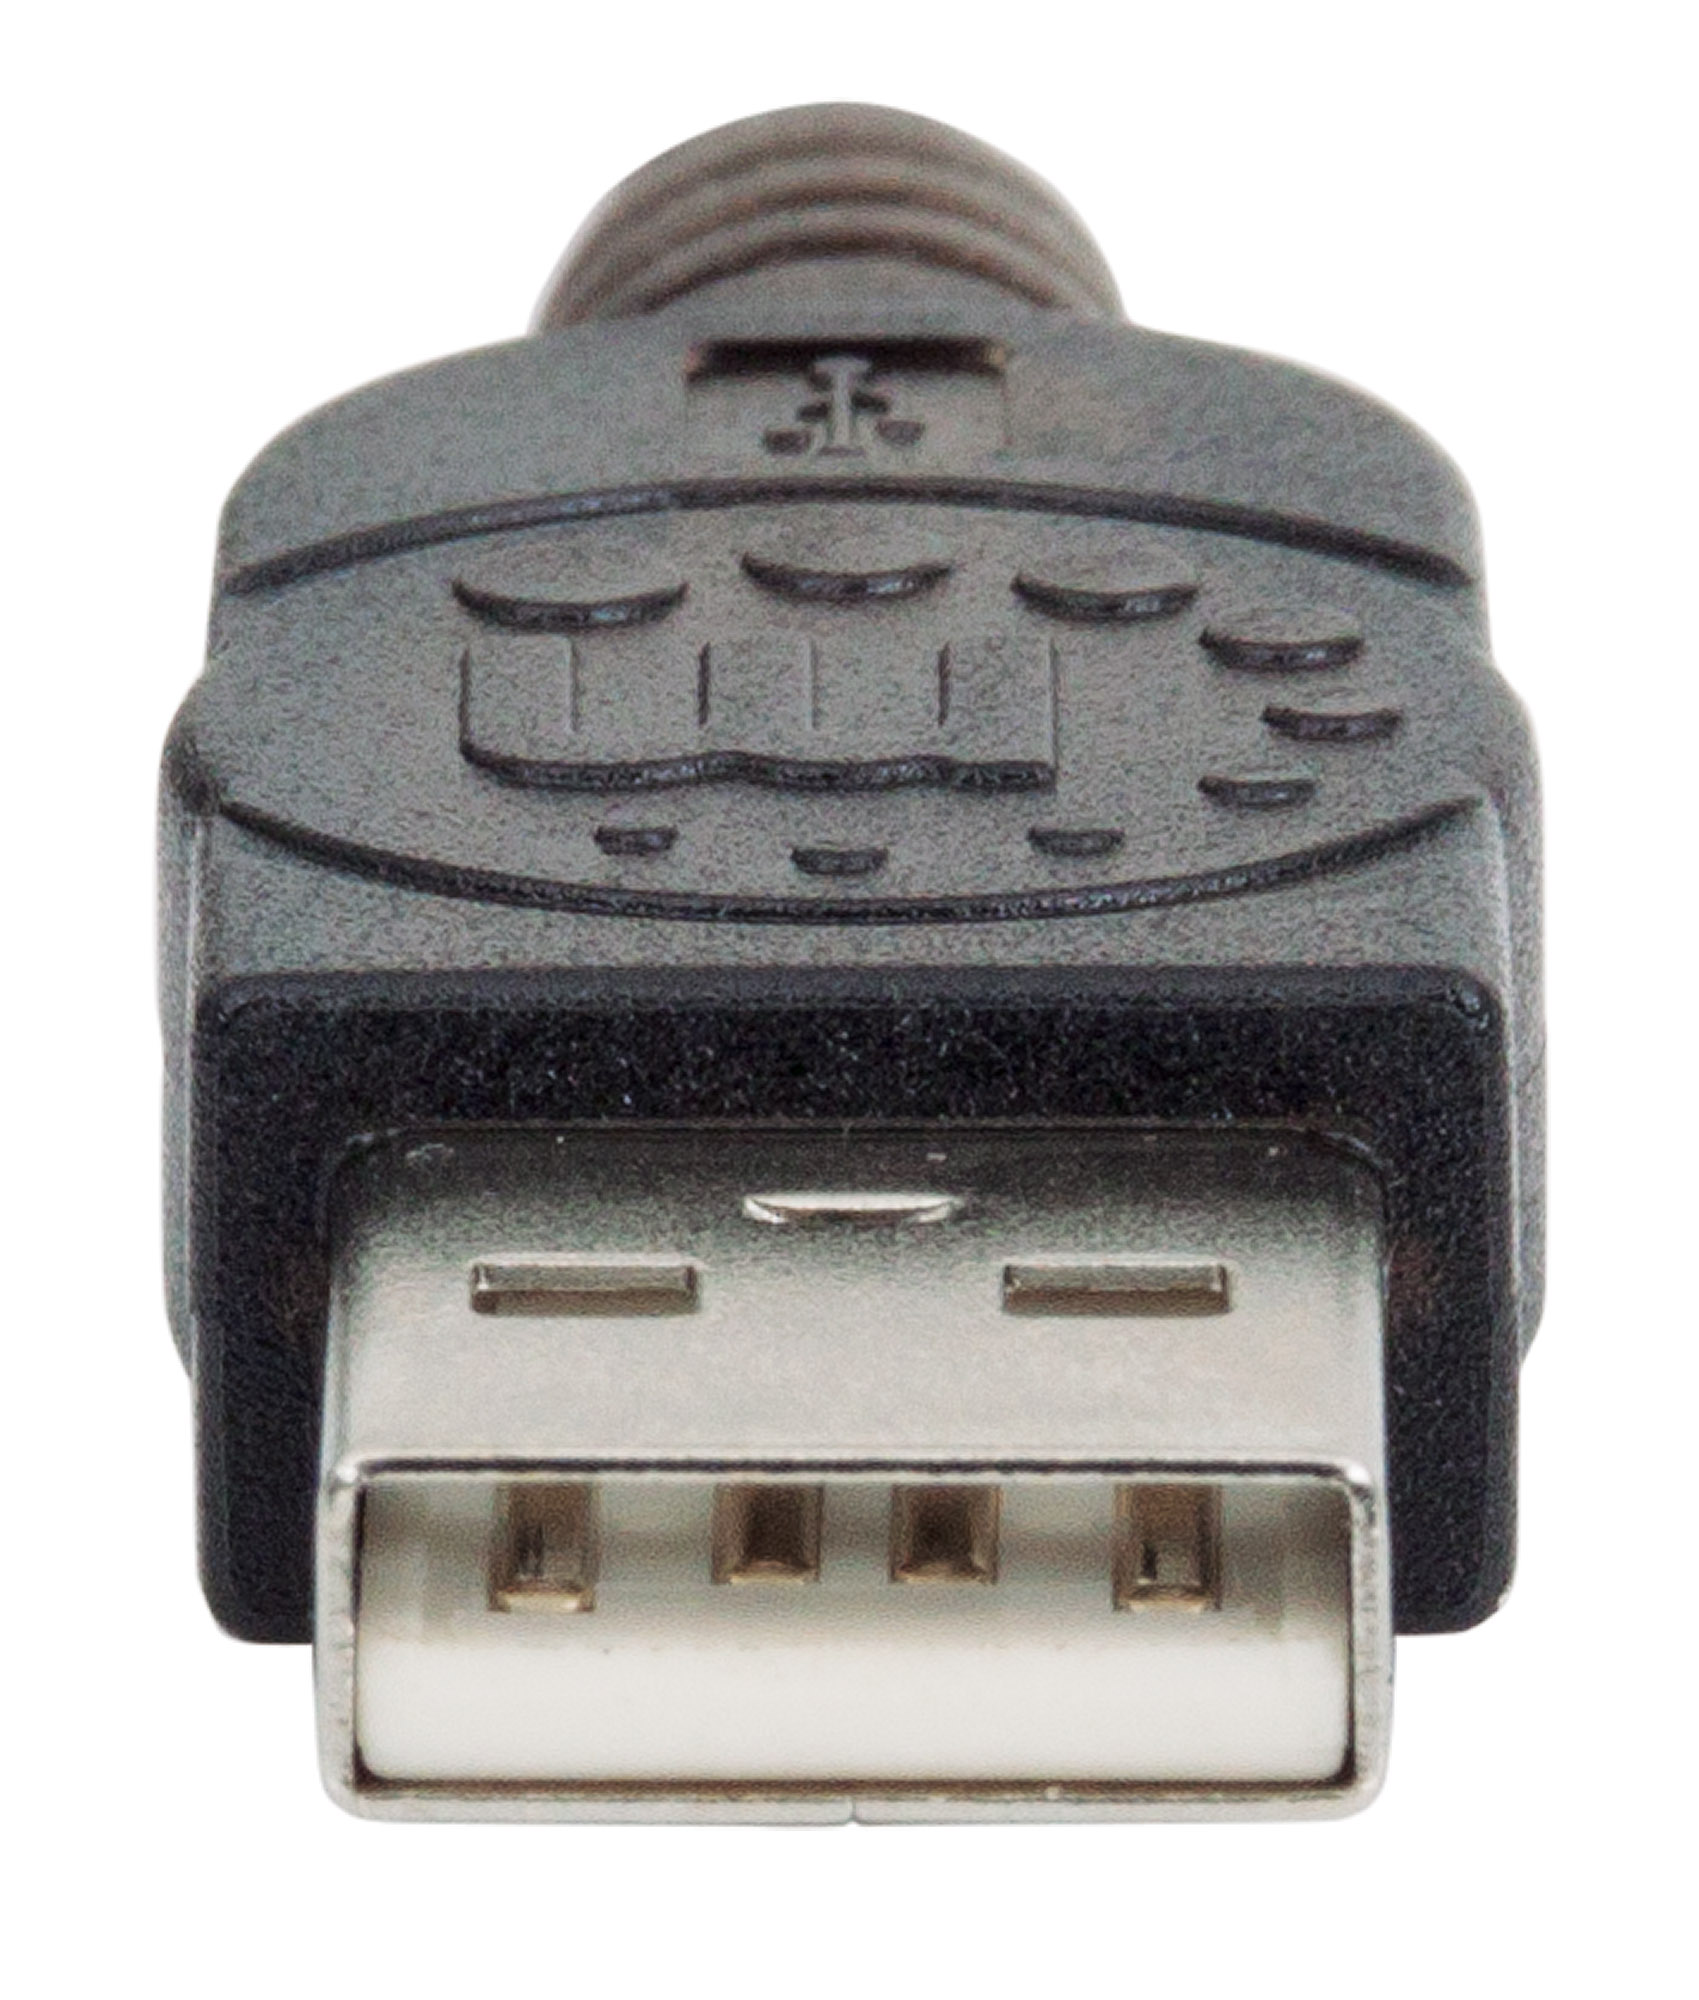 Hi-Speed USB Active Extension Cable